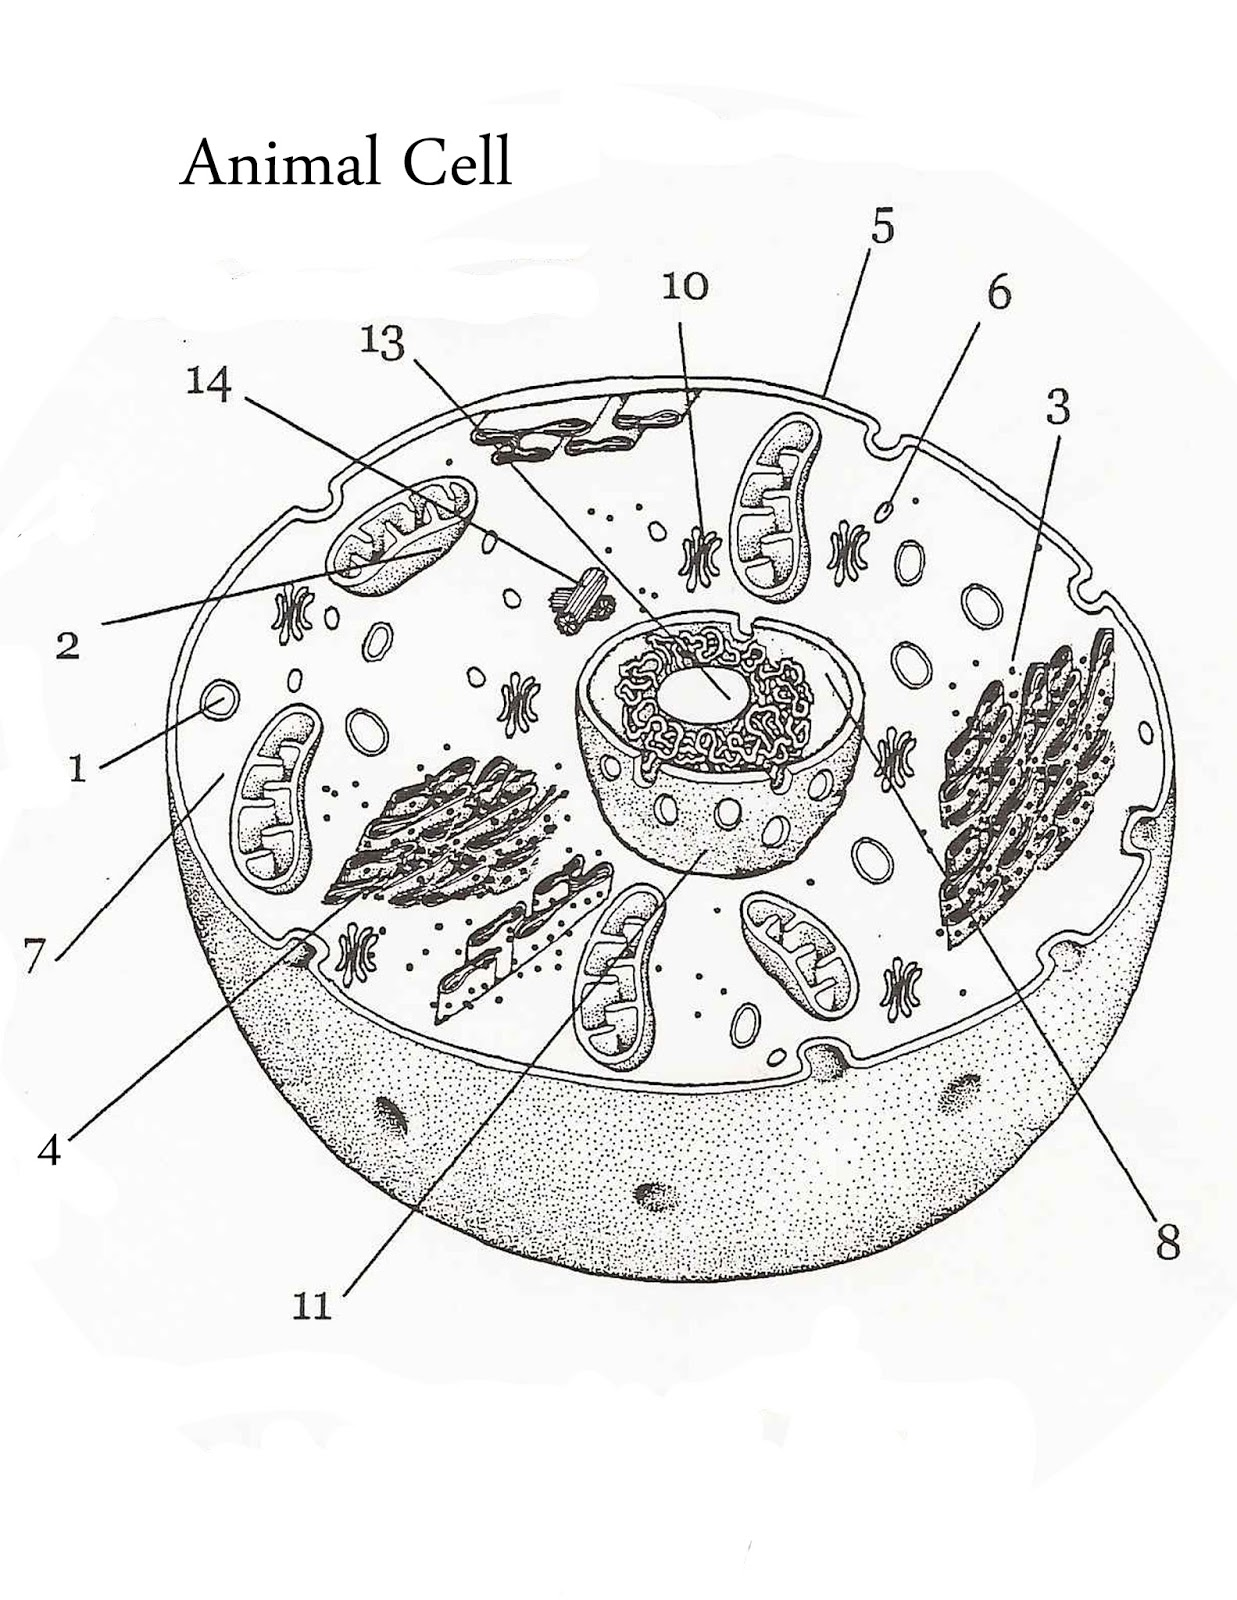 Animal Cells Drawing At Getdrawings